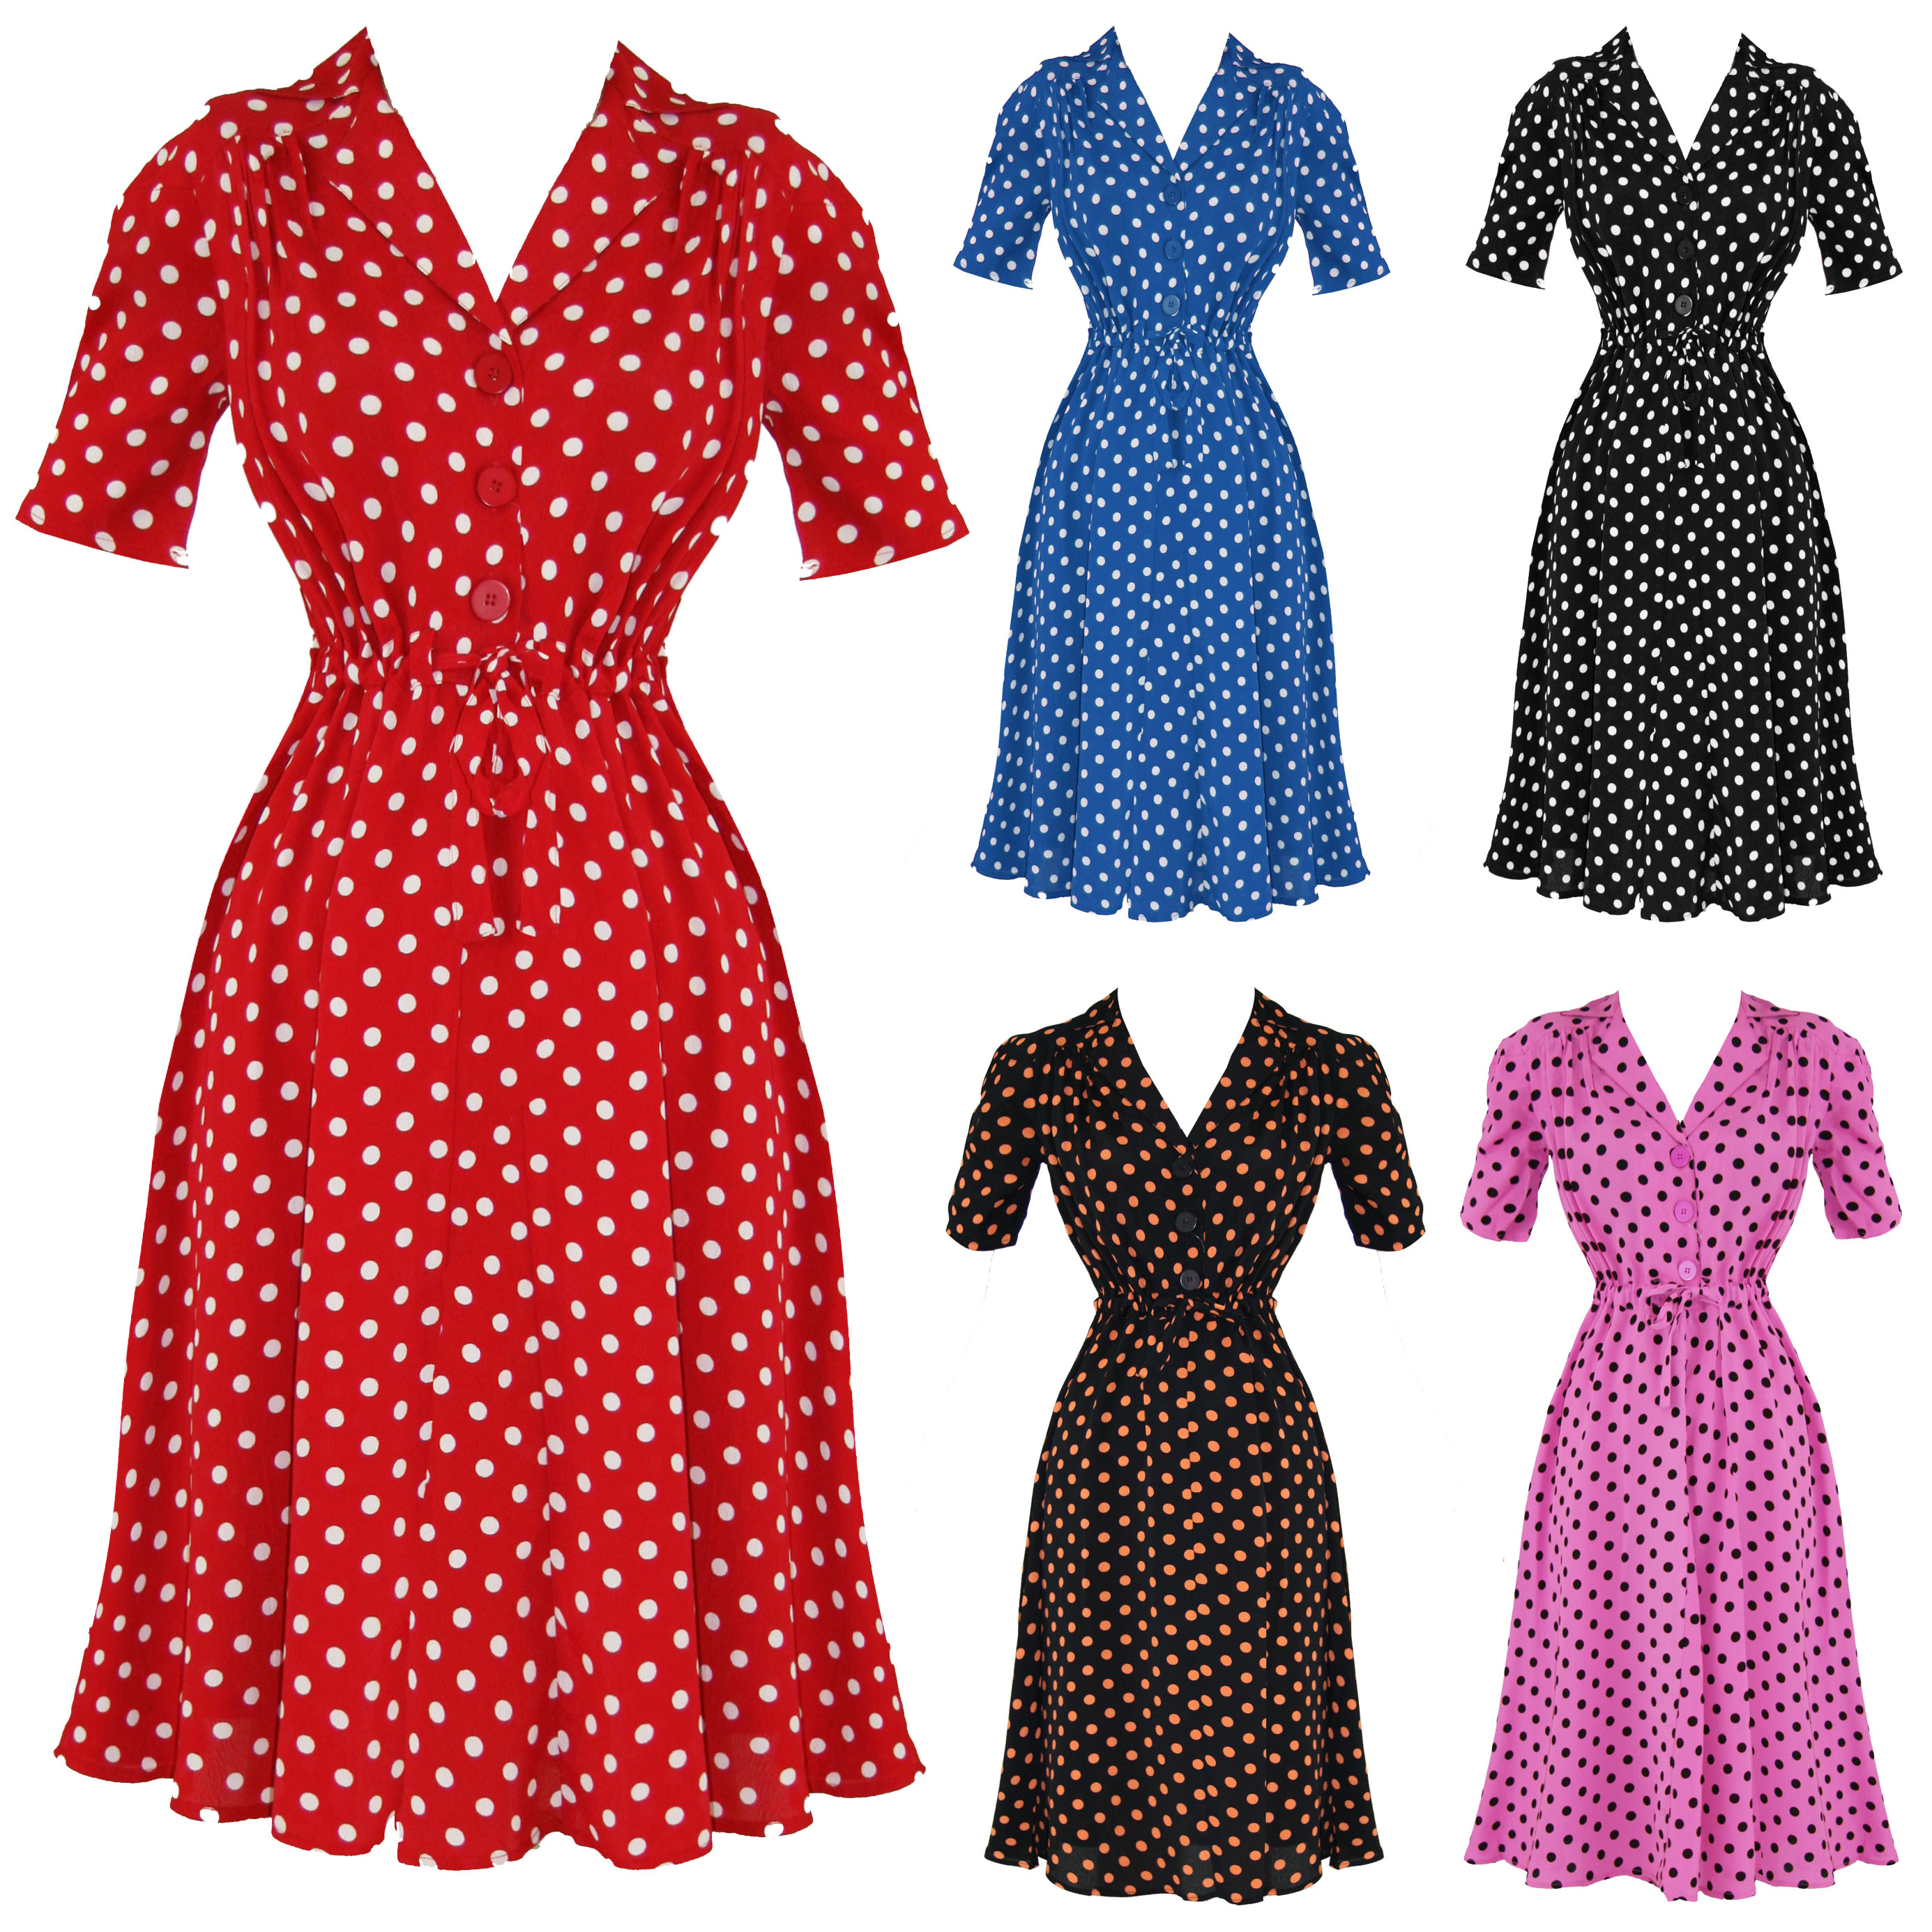 Cheap 1940s style dresses uk only